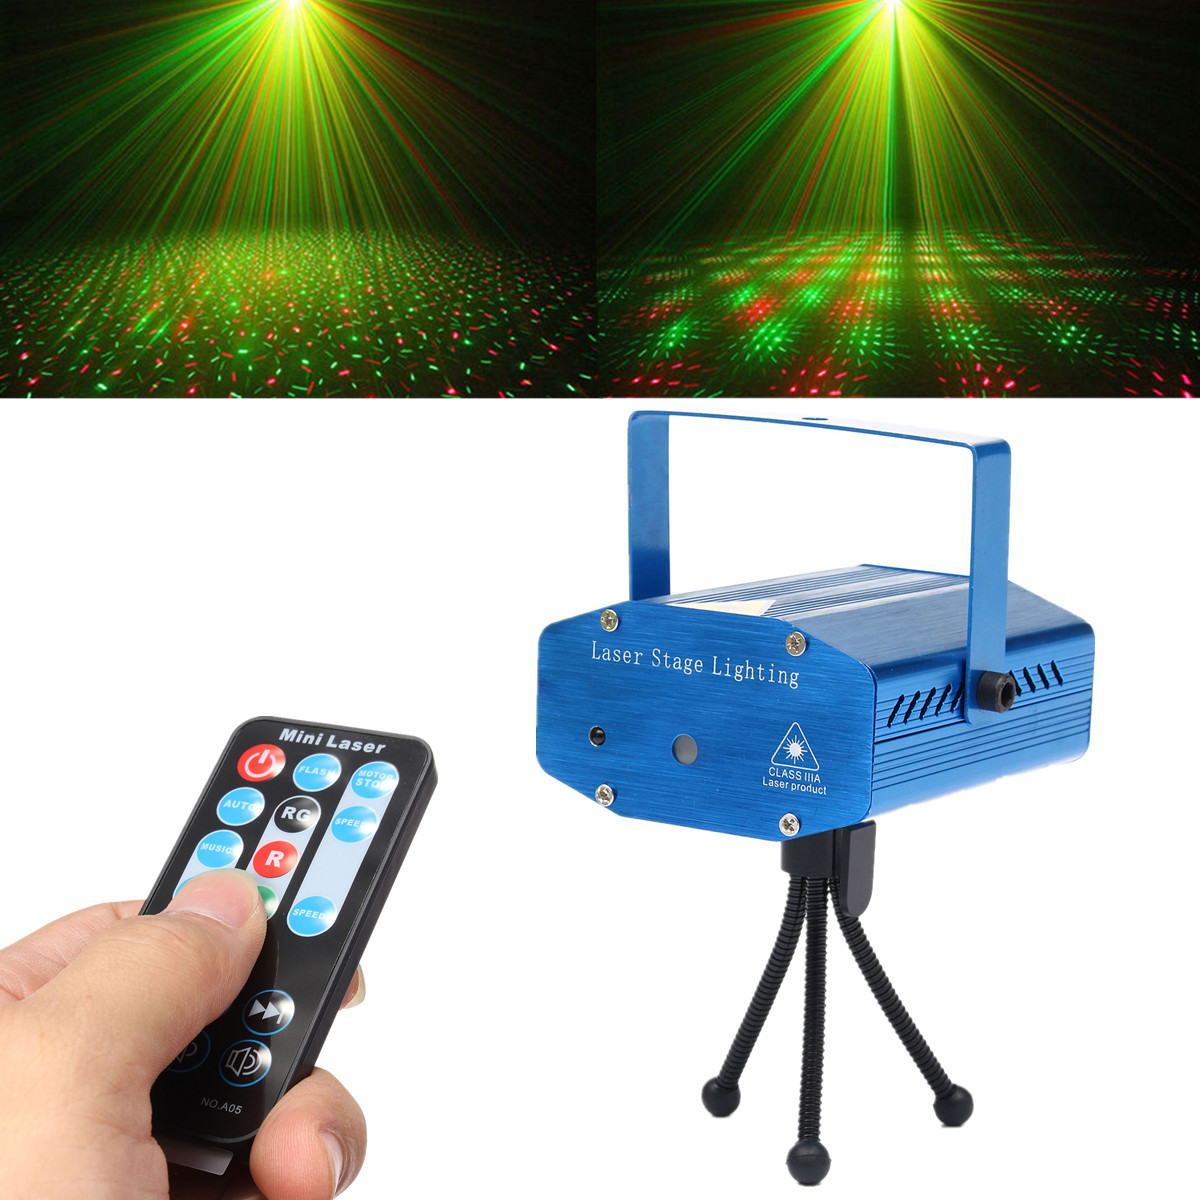 Mini led laser stage projecteur xmas lumiere eclairage telecommande pr dj disco ebay for Projecteur led laser